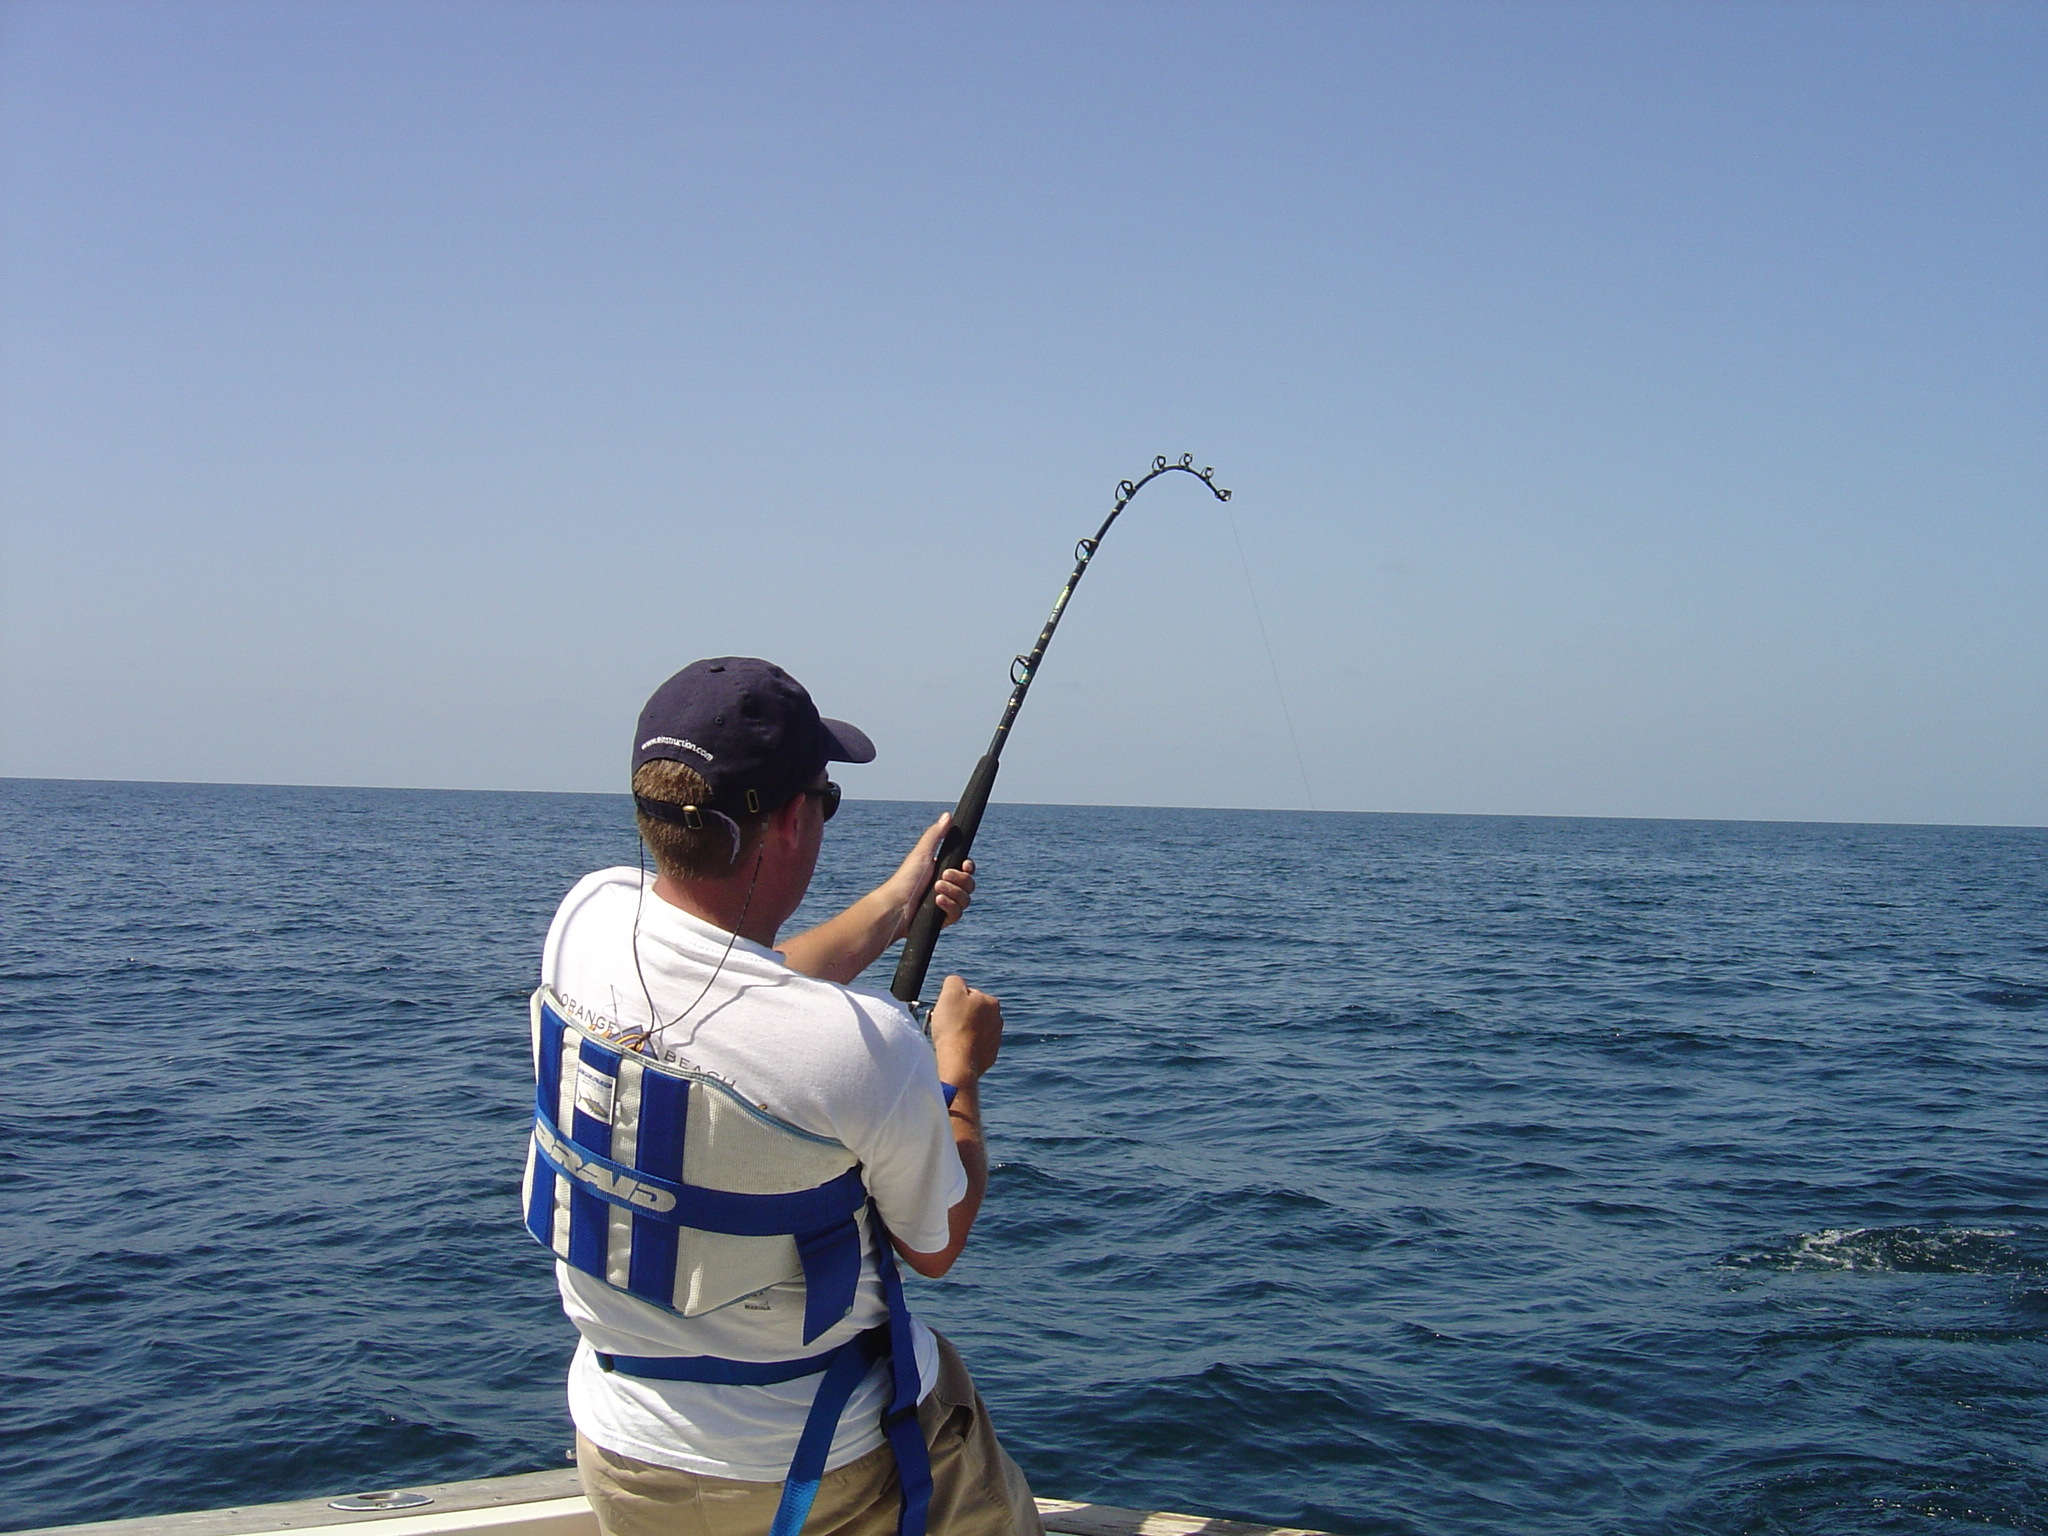 Fishing rod - Wikipedia, the free encyclopedia